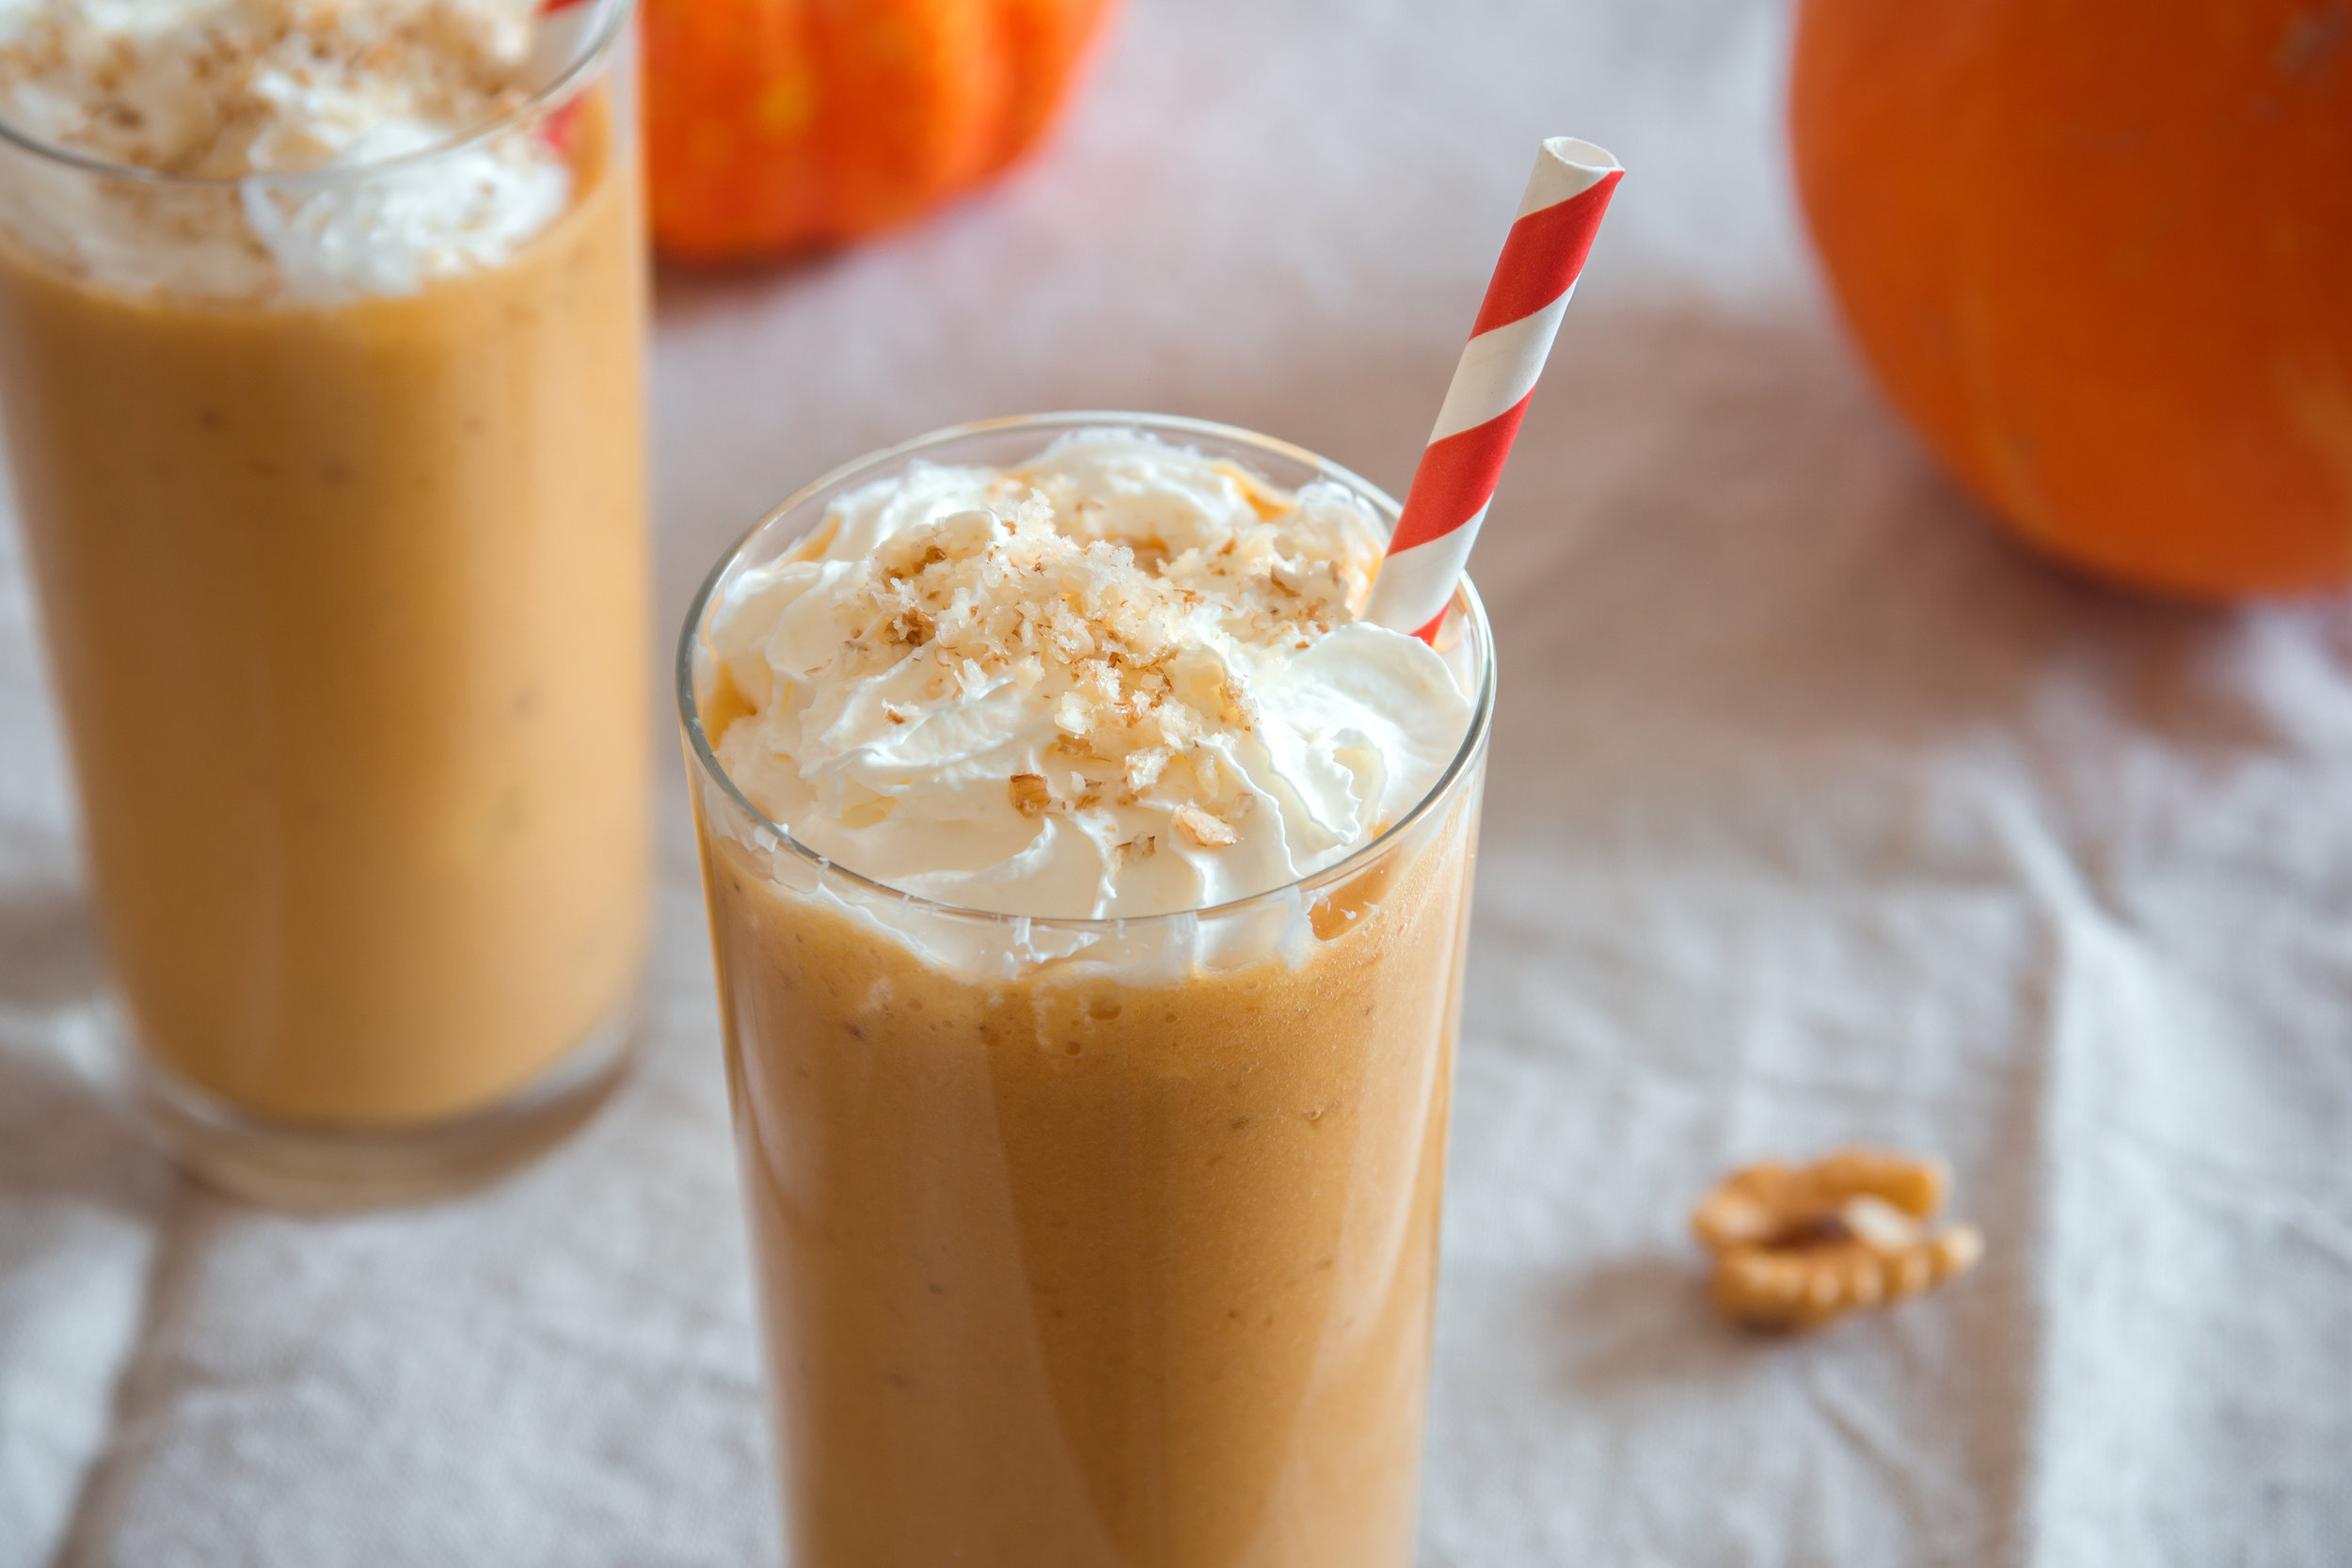 Are you a breastfeeding mama looking to celebrate the pumpkin spice season with an easy recipe to help boost your milk supply? Well, this simple, dairy-free lactation smoothie is the answer. Packed with lactogenic ingredients such as pumpkins, dates, carrots, cinnamon, & coconut milk; this super food smoothie is not only healthy, but helps promote milk supply. Add coffee to make it a delicious latte.   #lactationsmoothie #breastfeedingsmoothie #breastfeeding #pumpkinspice #pumpkinspicesmoothie